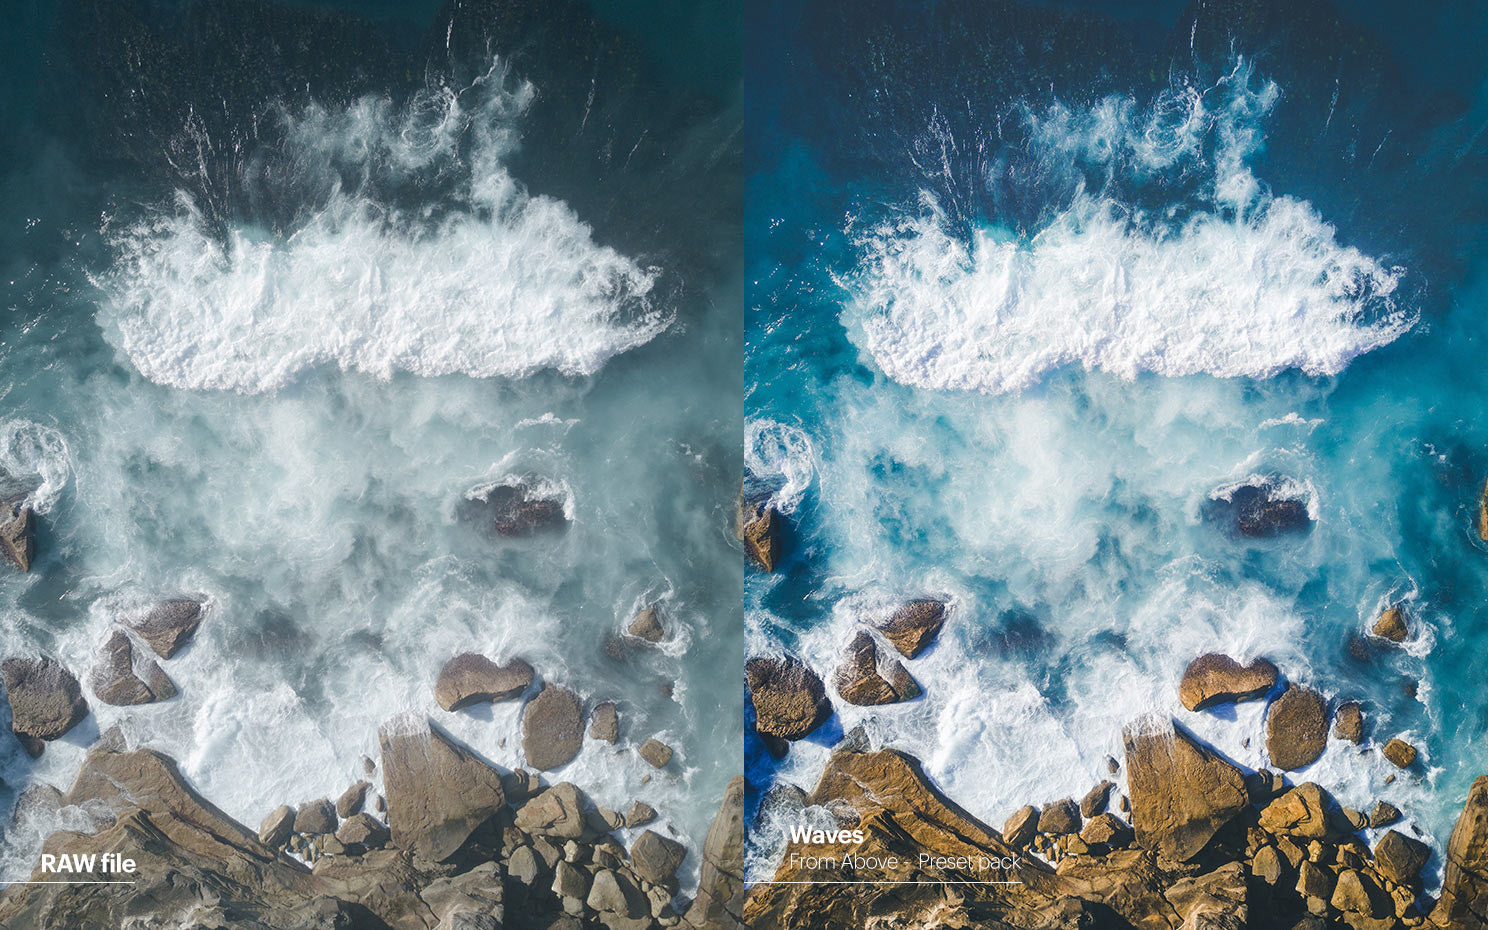 Pat Kay presets - From Above - Wave